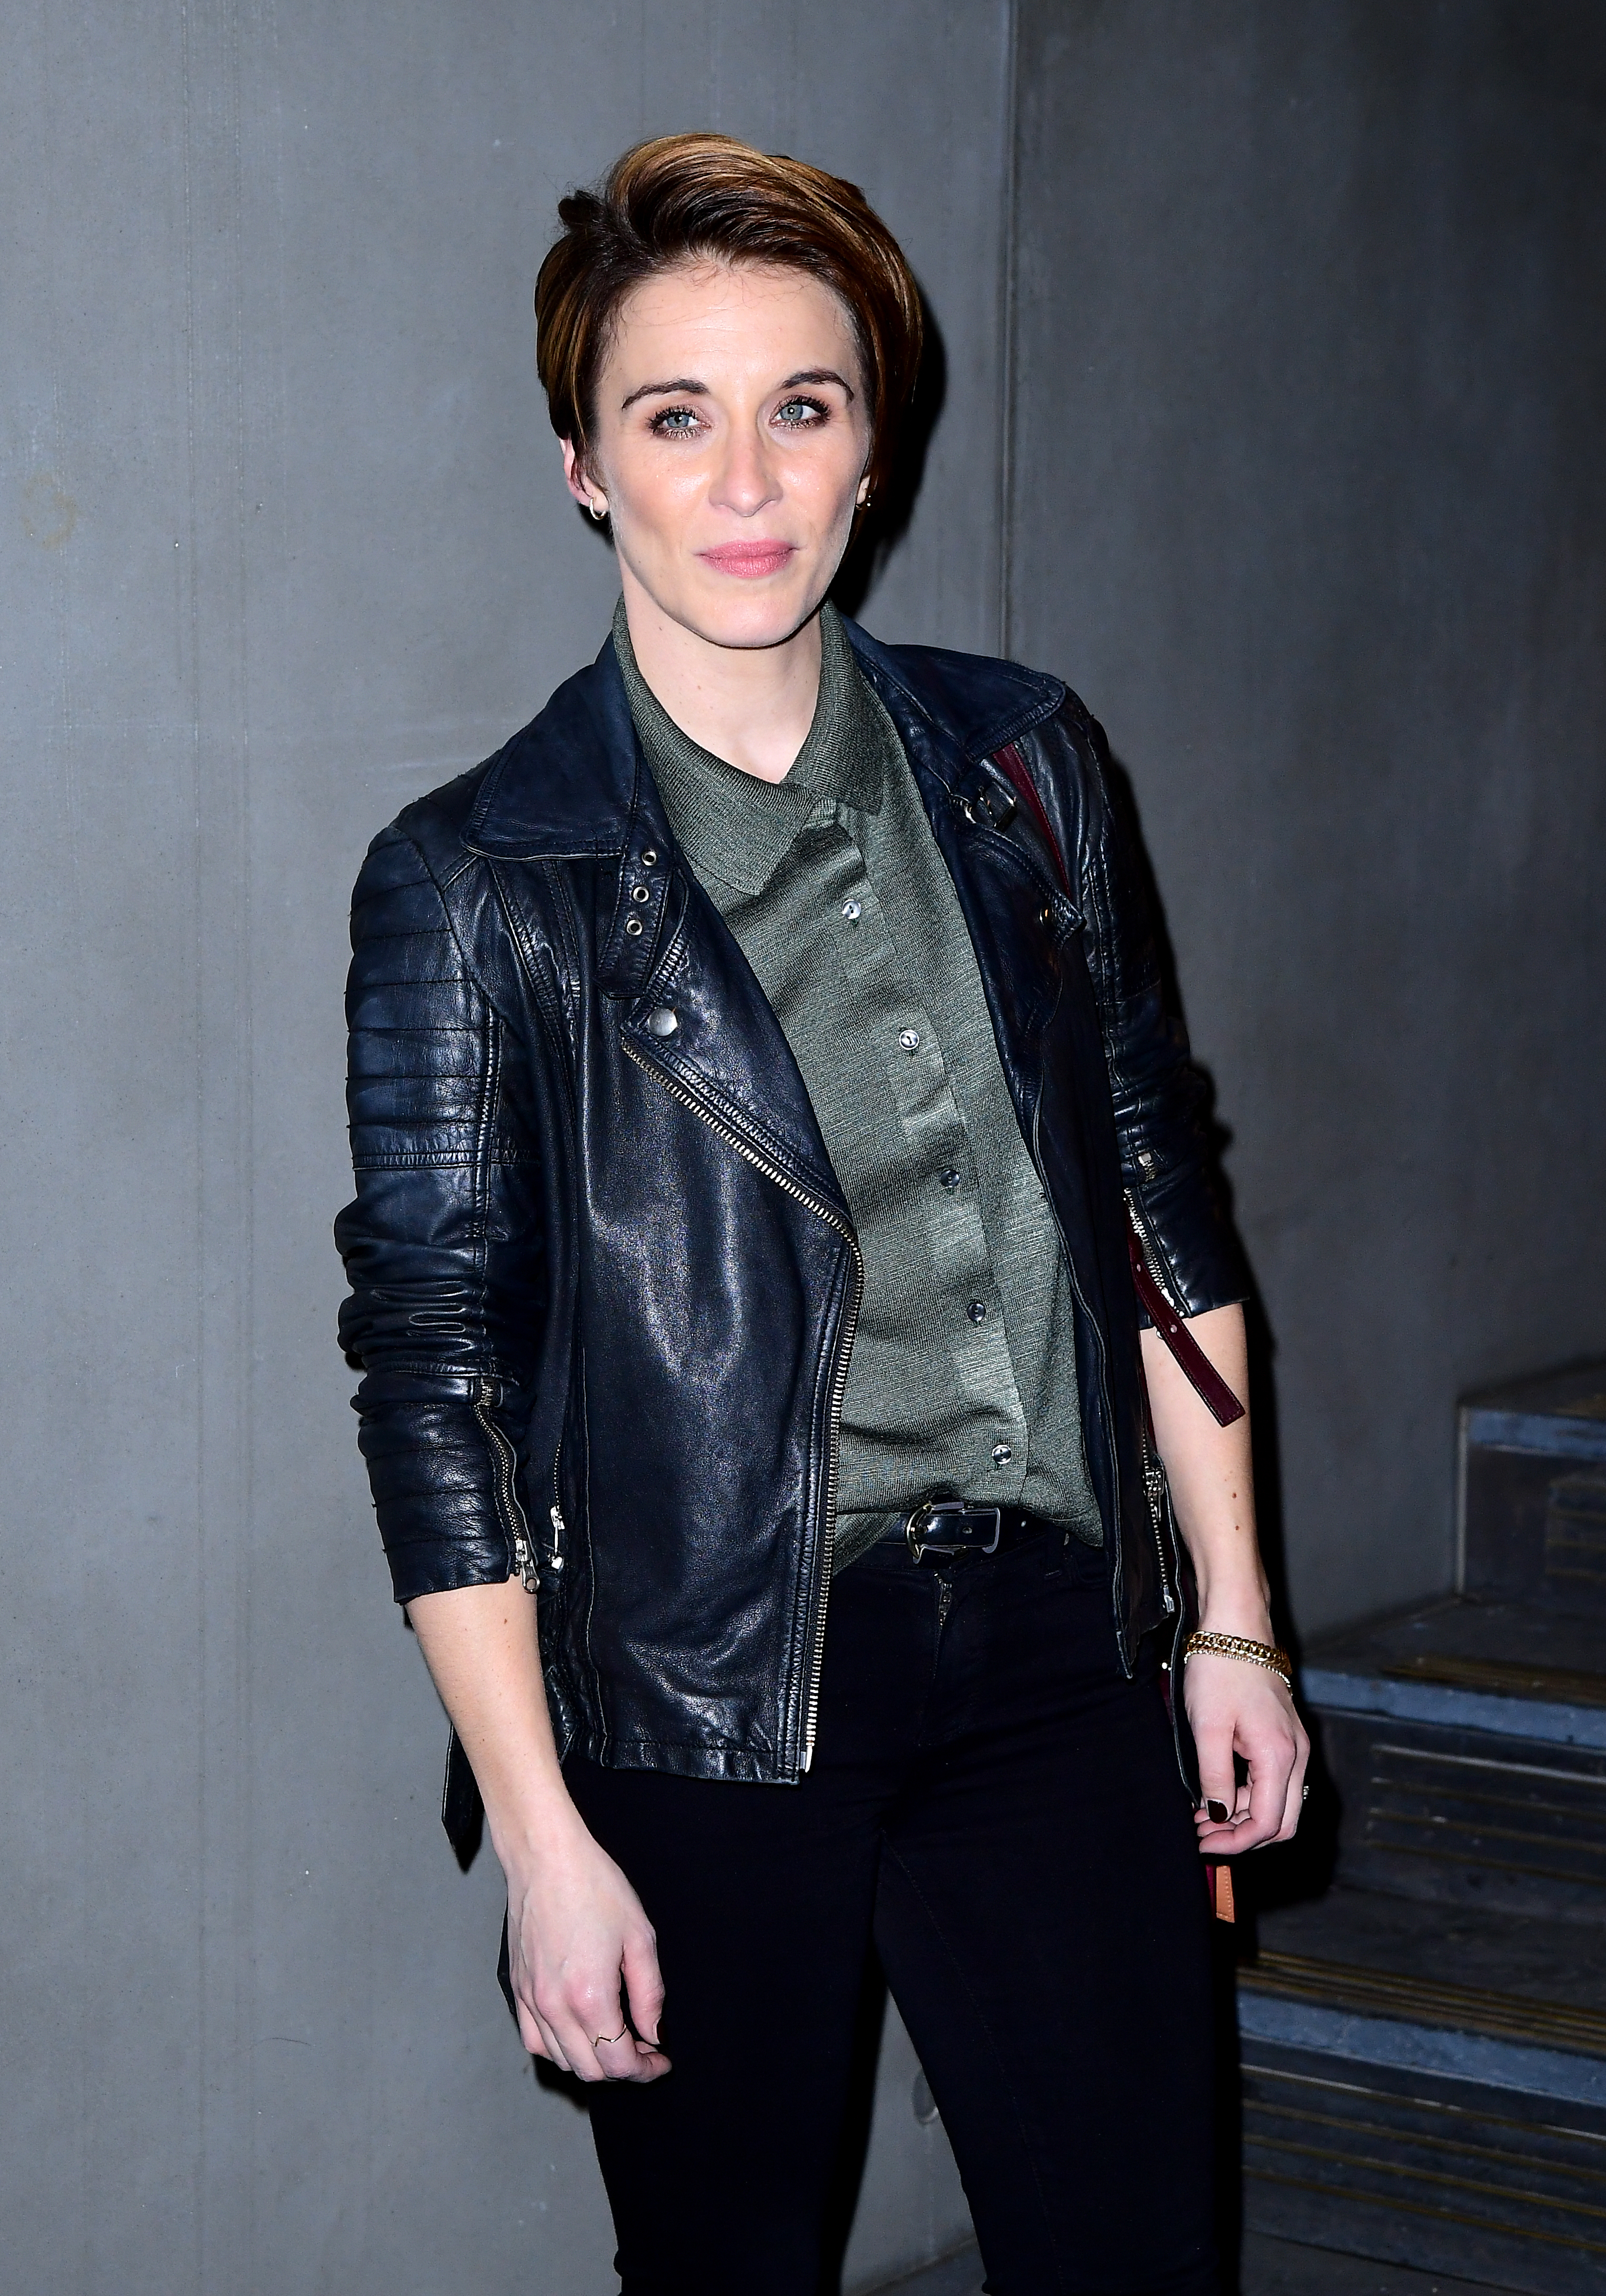 Vicky McClure has said she'd 'love' to do another This Is England story. Credit: PA